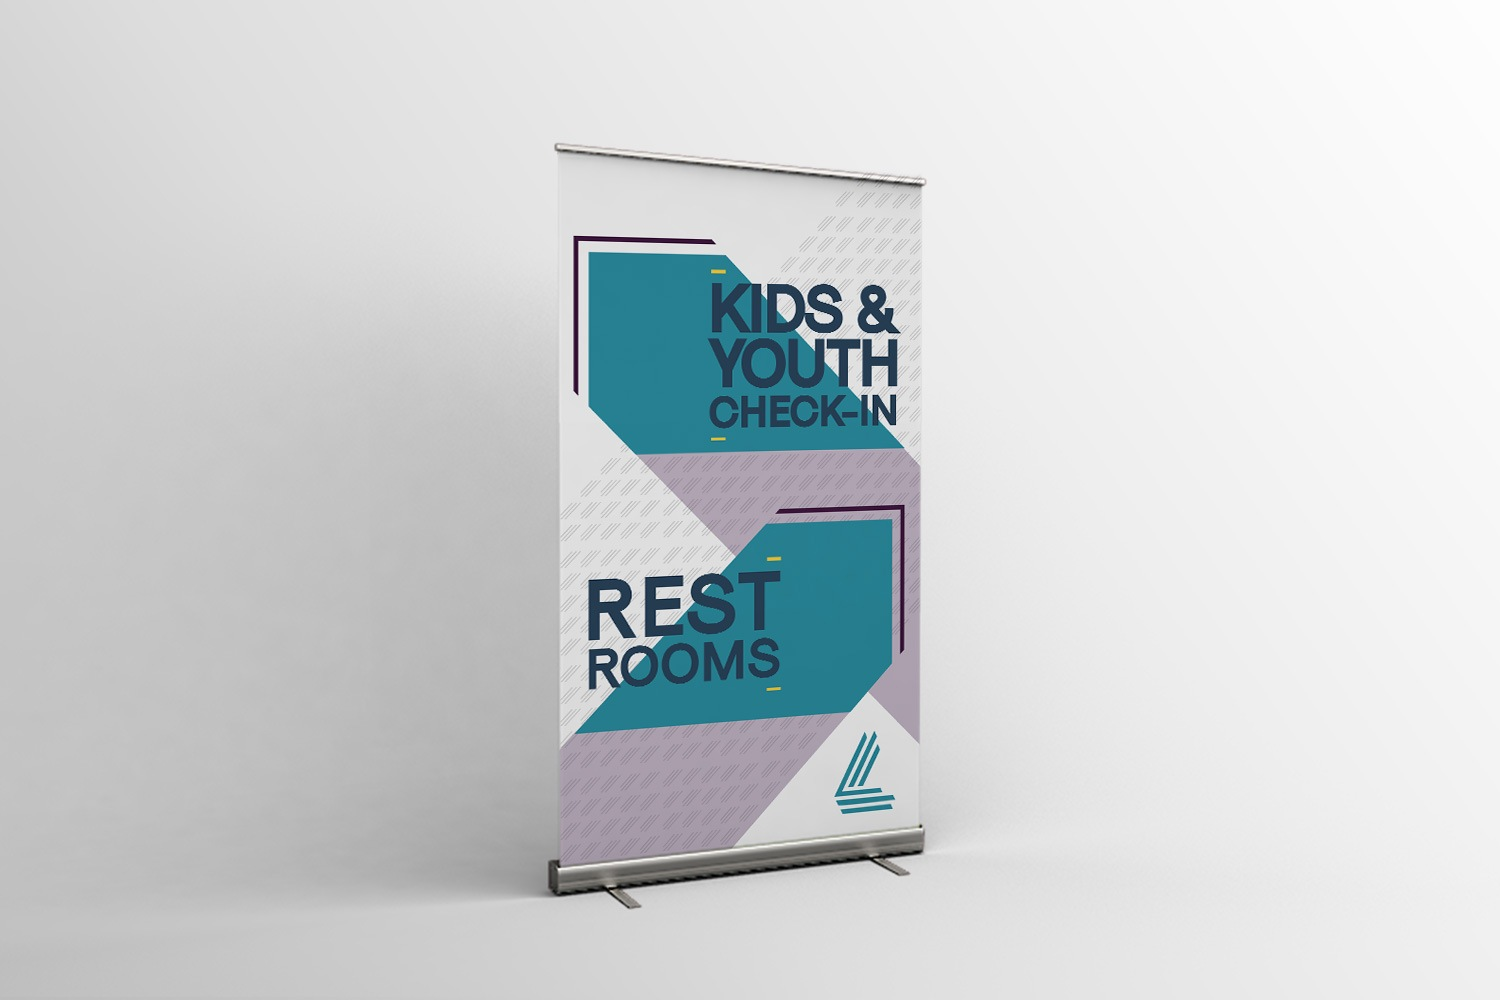 Church Retractable Banners for rollup wayinding design ideas for marketing, branding, outreach